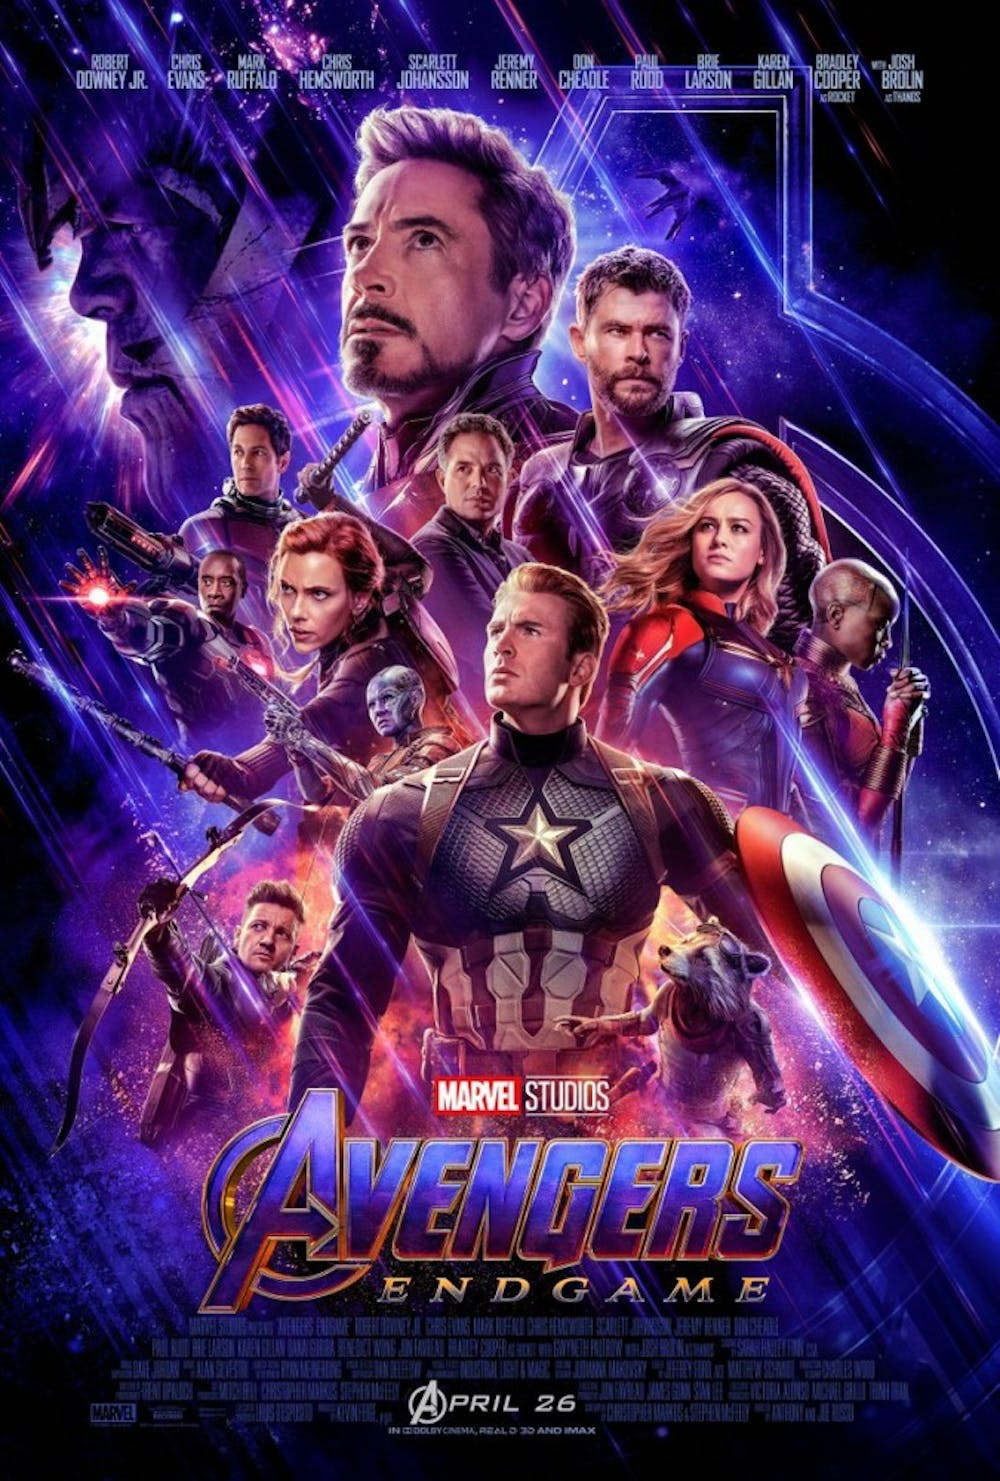 Film Review: 'Avengers: Endgame' is the movie crossover event of a lifetime